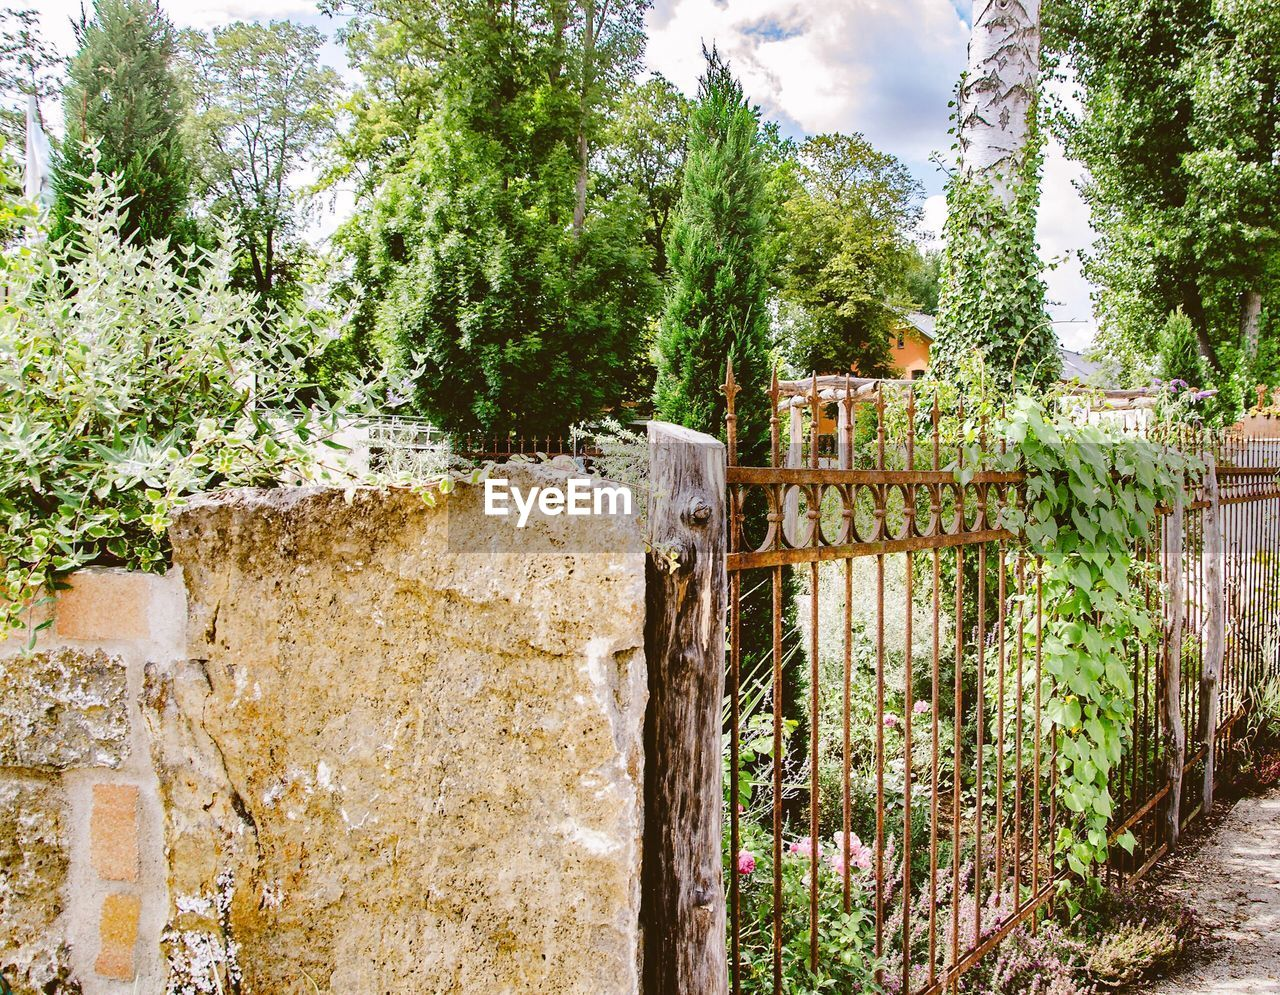 plant, tree, built structure, architecture, day, nature, no people, growth, green color, fence, barrier, boundary, wall, cloud - sky, sky, old, weathered, outdoors, building exterior, wall - building feature, stone wall, ruined